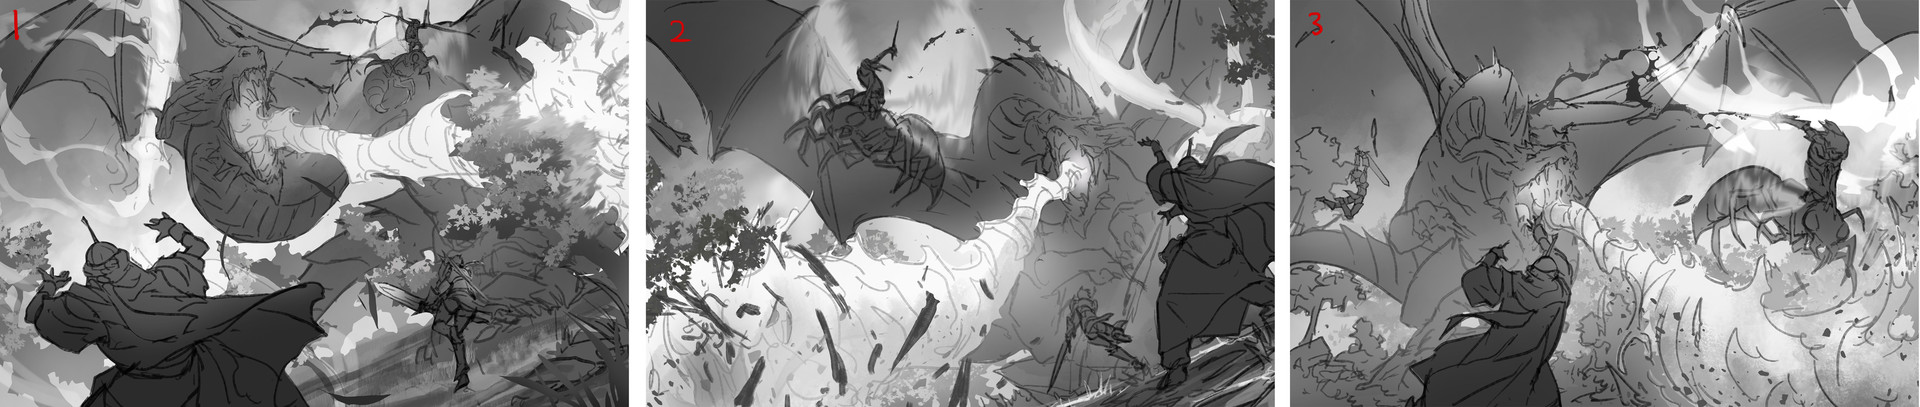 Lie setiawan dragonbattle roughs